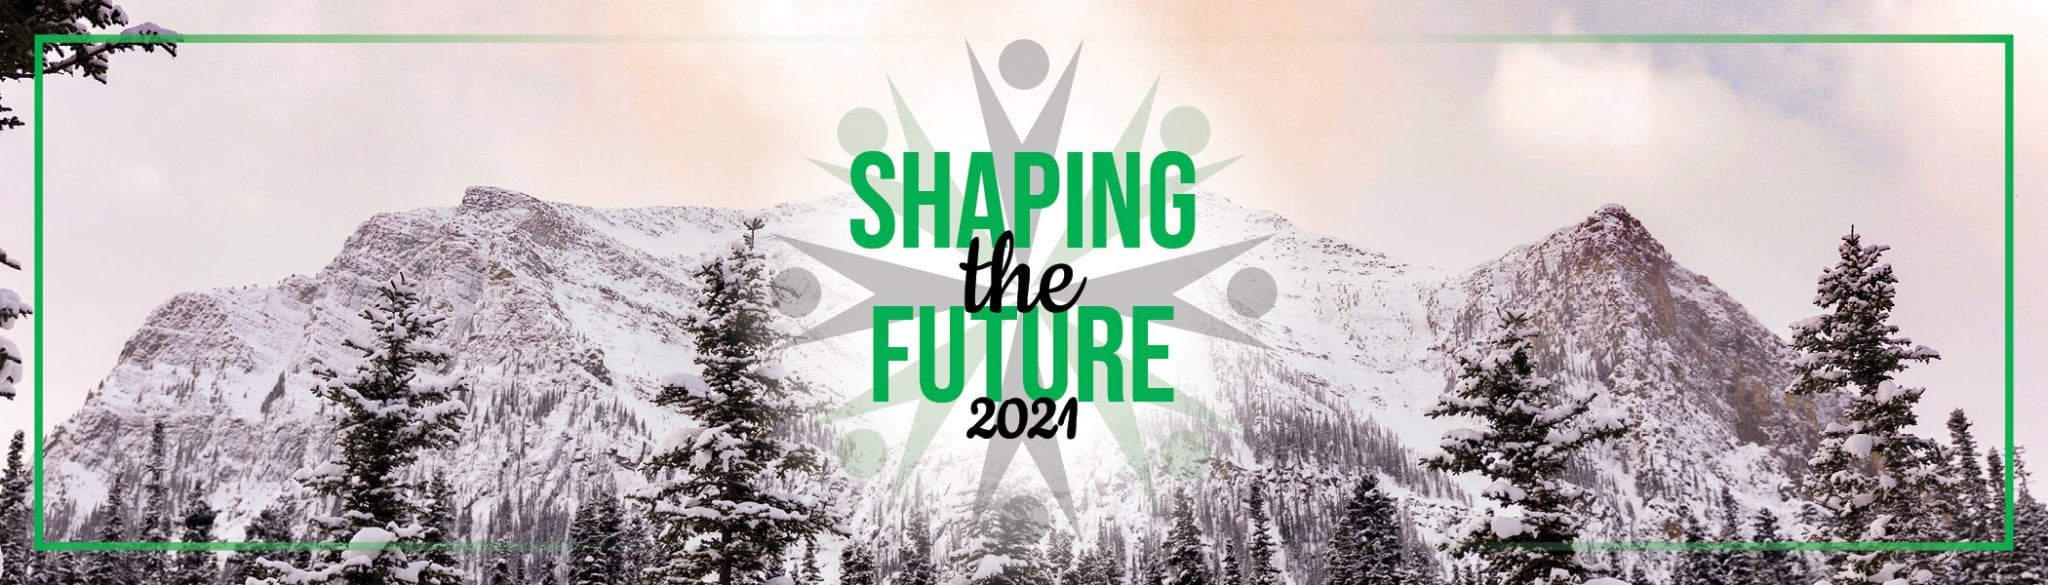 Shaping the Future 2021 logo on mountain with colourful sky.